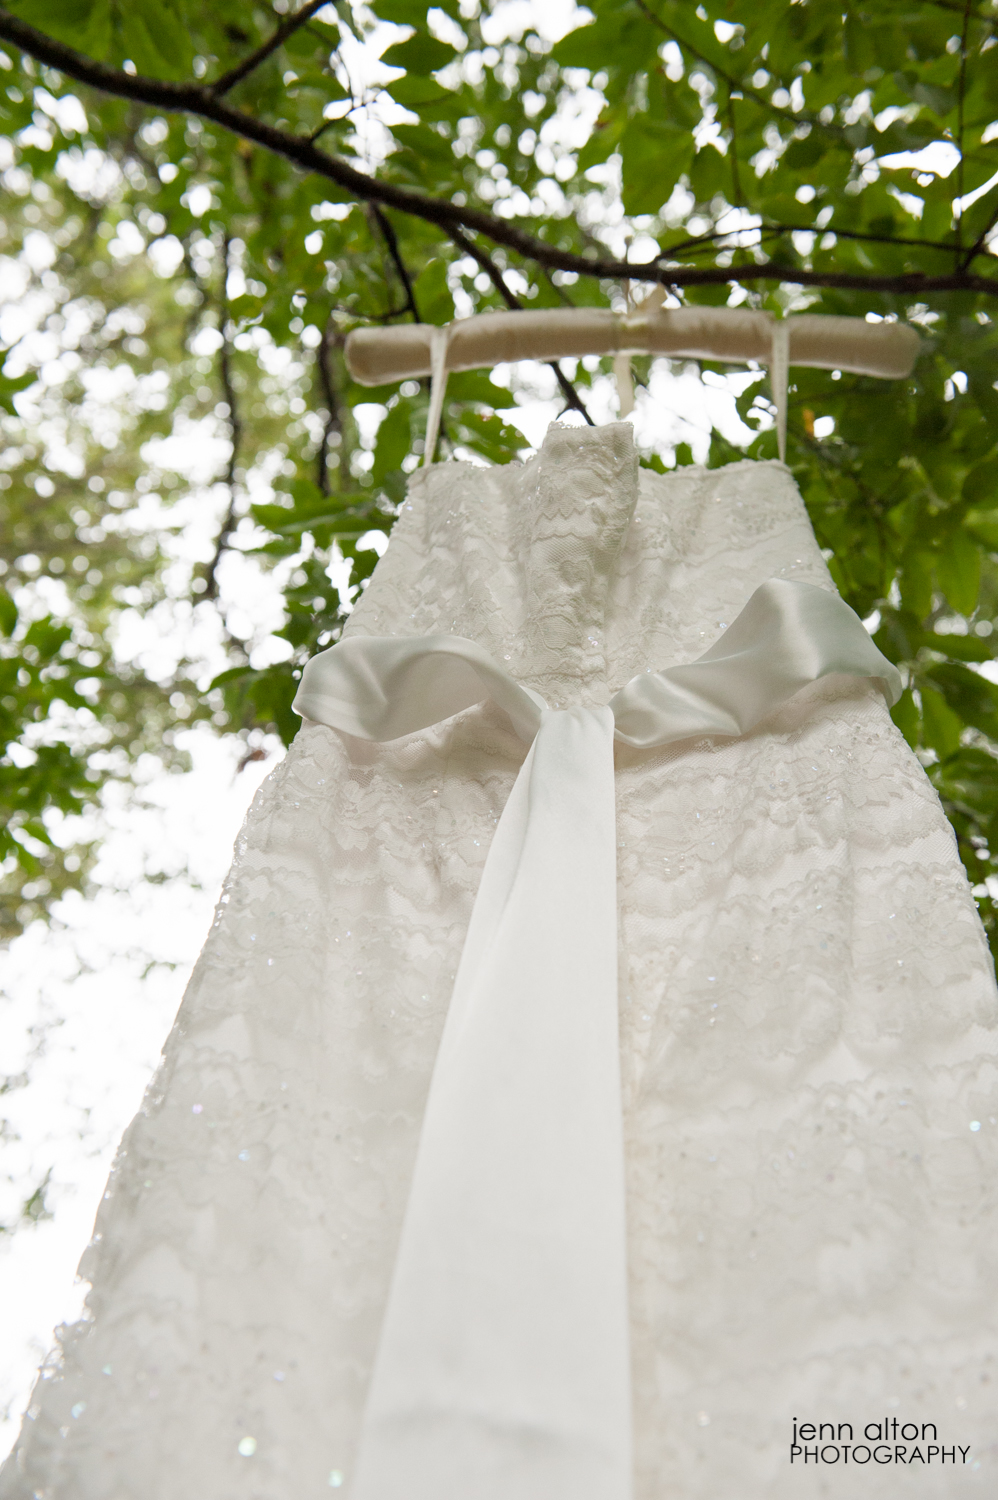 Wedding gown details displayed in a green leafy tree.